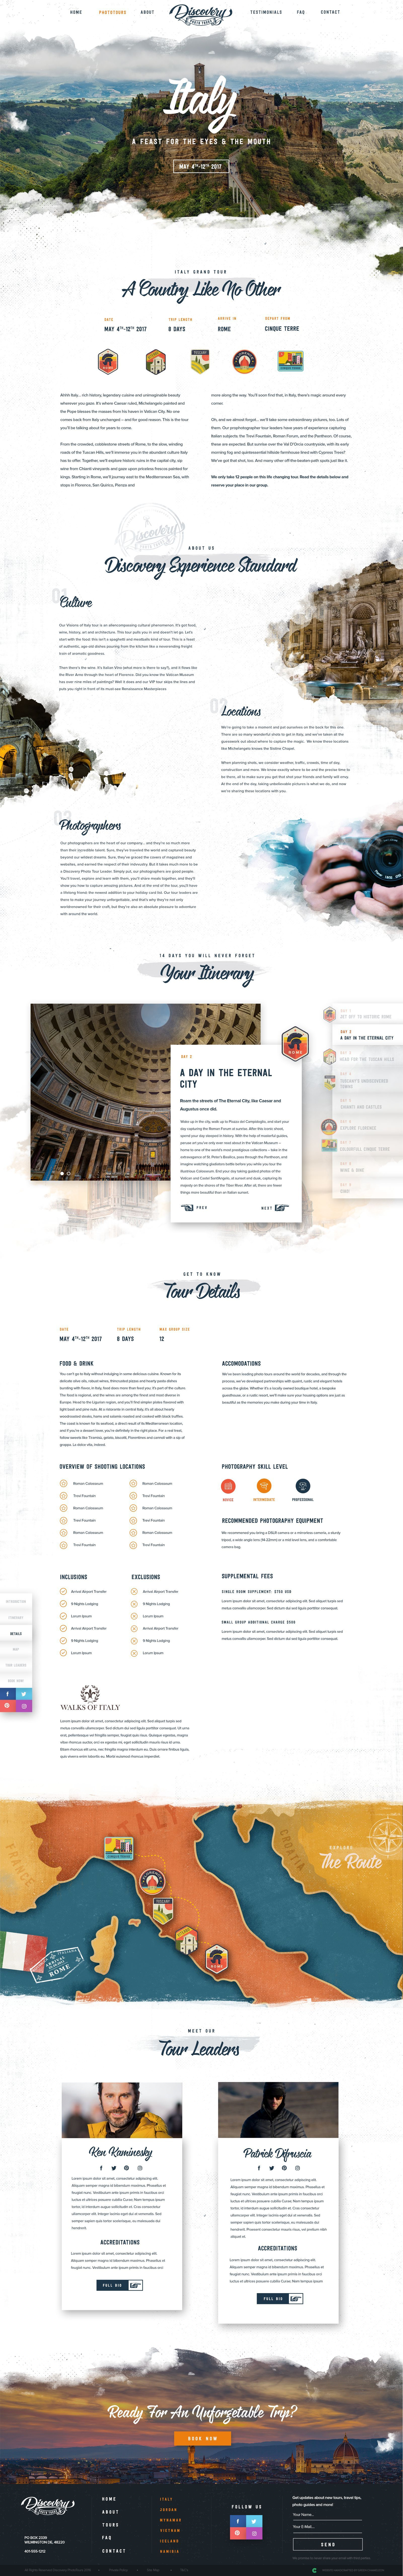 Discovery Photo Tours - Italy tour page Ui design concept by Jess Caddick for Green Chamaleon.